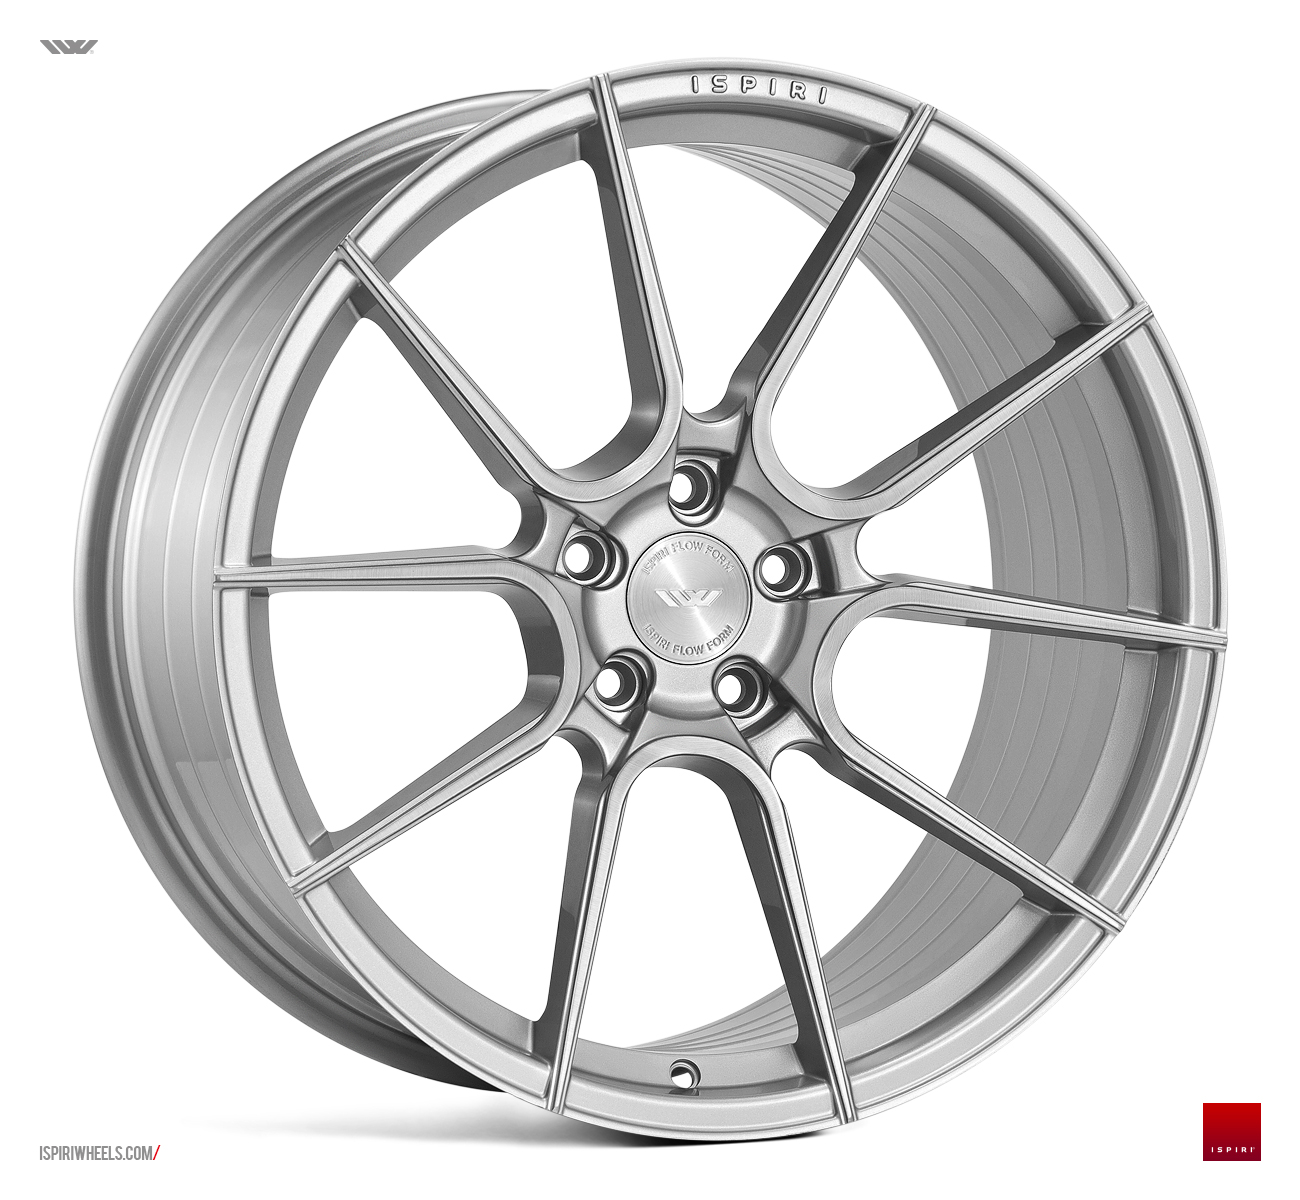 "NEW 21"" ISPIRI FFR6 TWIN 5 SPOKE ALLOYS IN PURE SILVER BRUSHED, WIDER 10.5"" REAR"